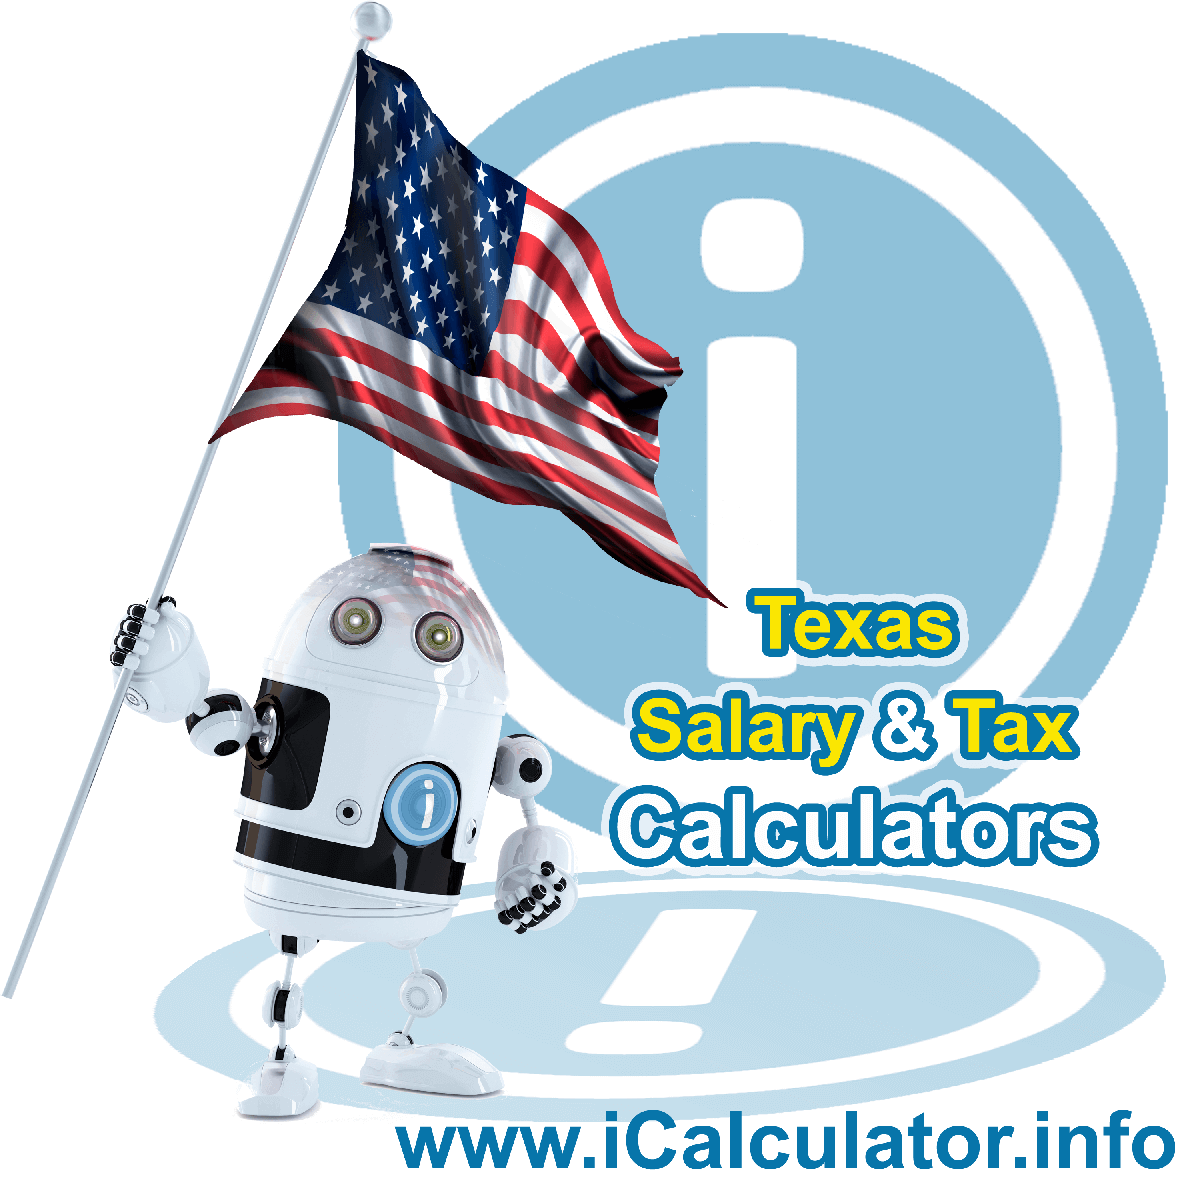 Texas Salary Calculator 2019 | iCalculator | The Texas Salary Calculator allows you to quickly calculate your salary after tax including Texas State Tax, Federal State Tax, Medicare Deductions, Social Security, Capital Gains and other income tax and salary deductions complete with supporting Texas state tax tables